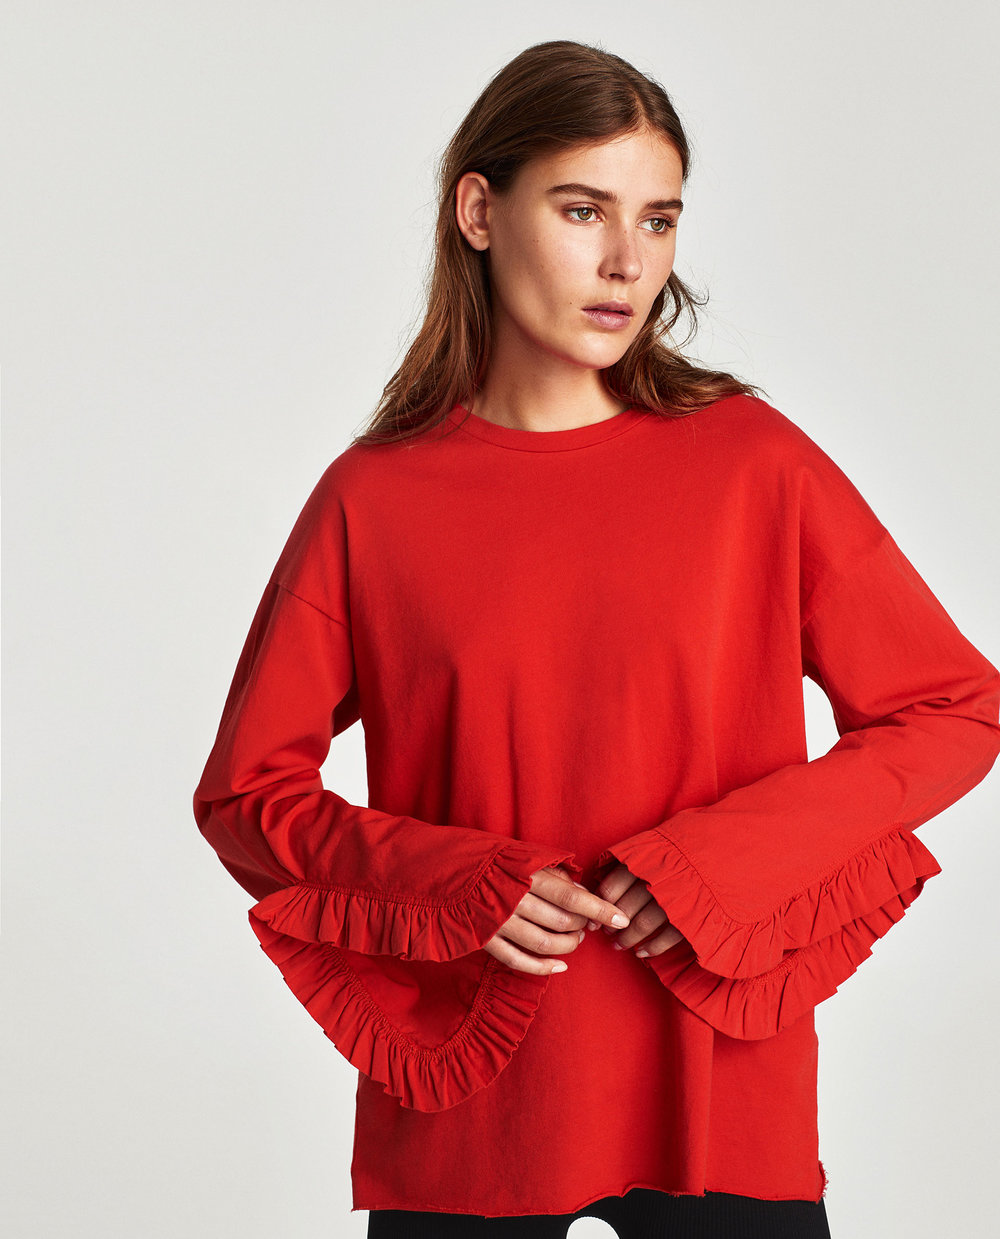 Zara Top with Frill Sleeve, $22.90